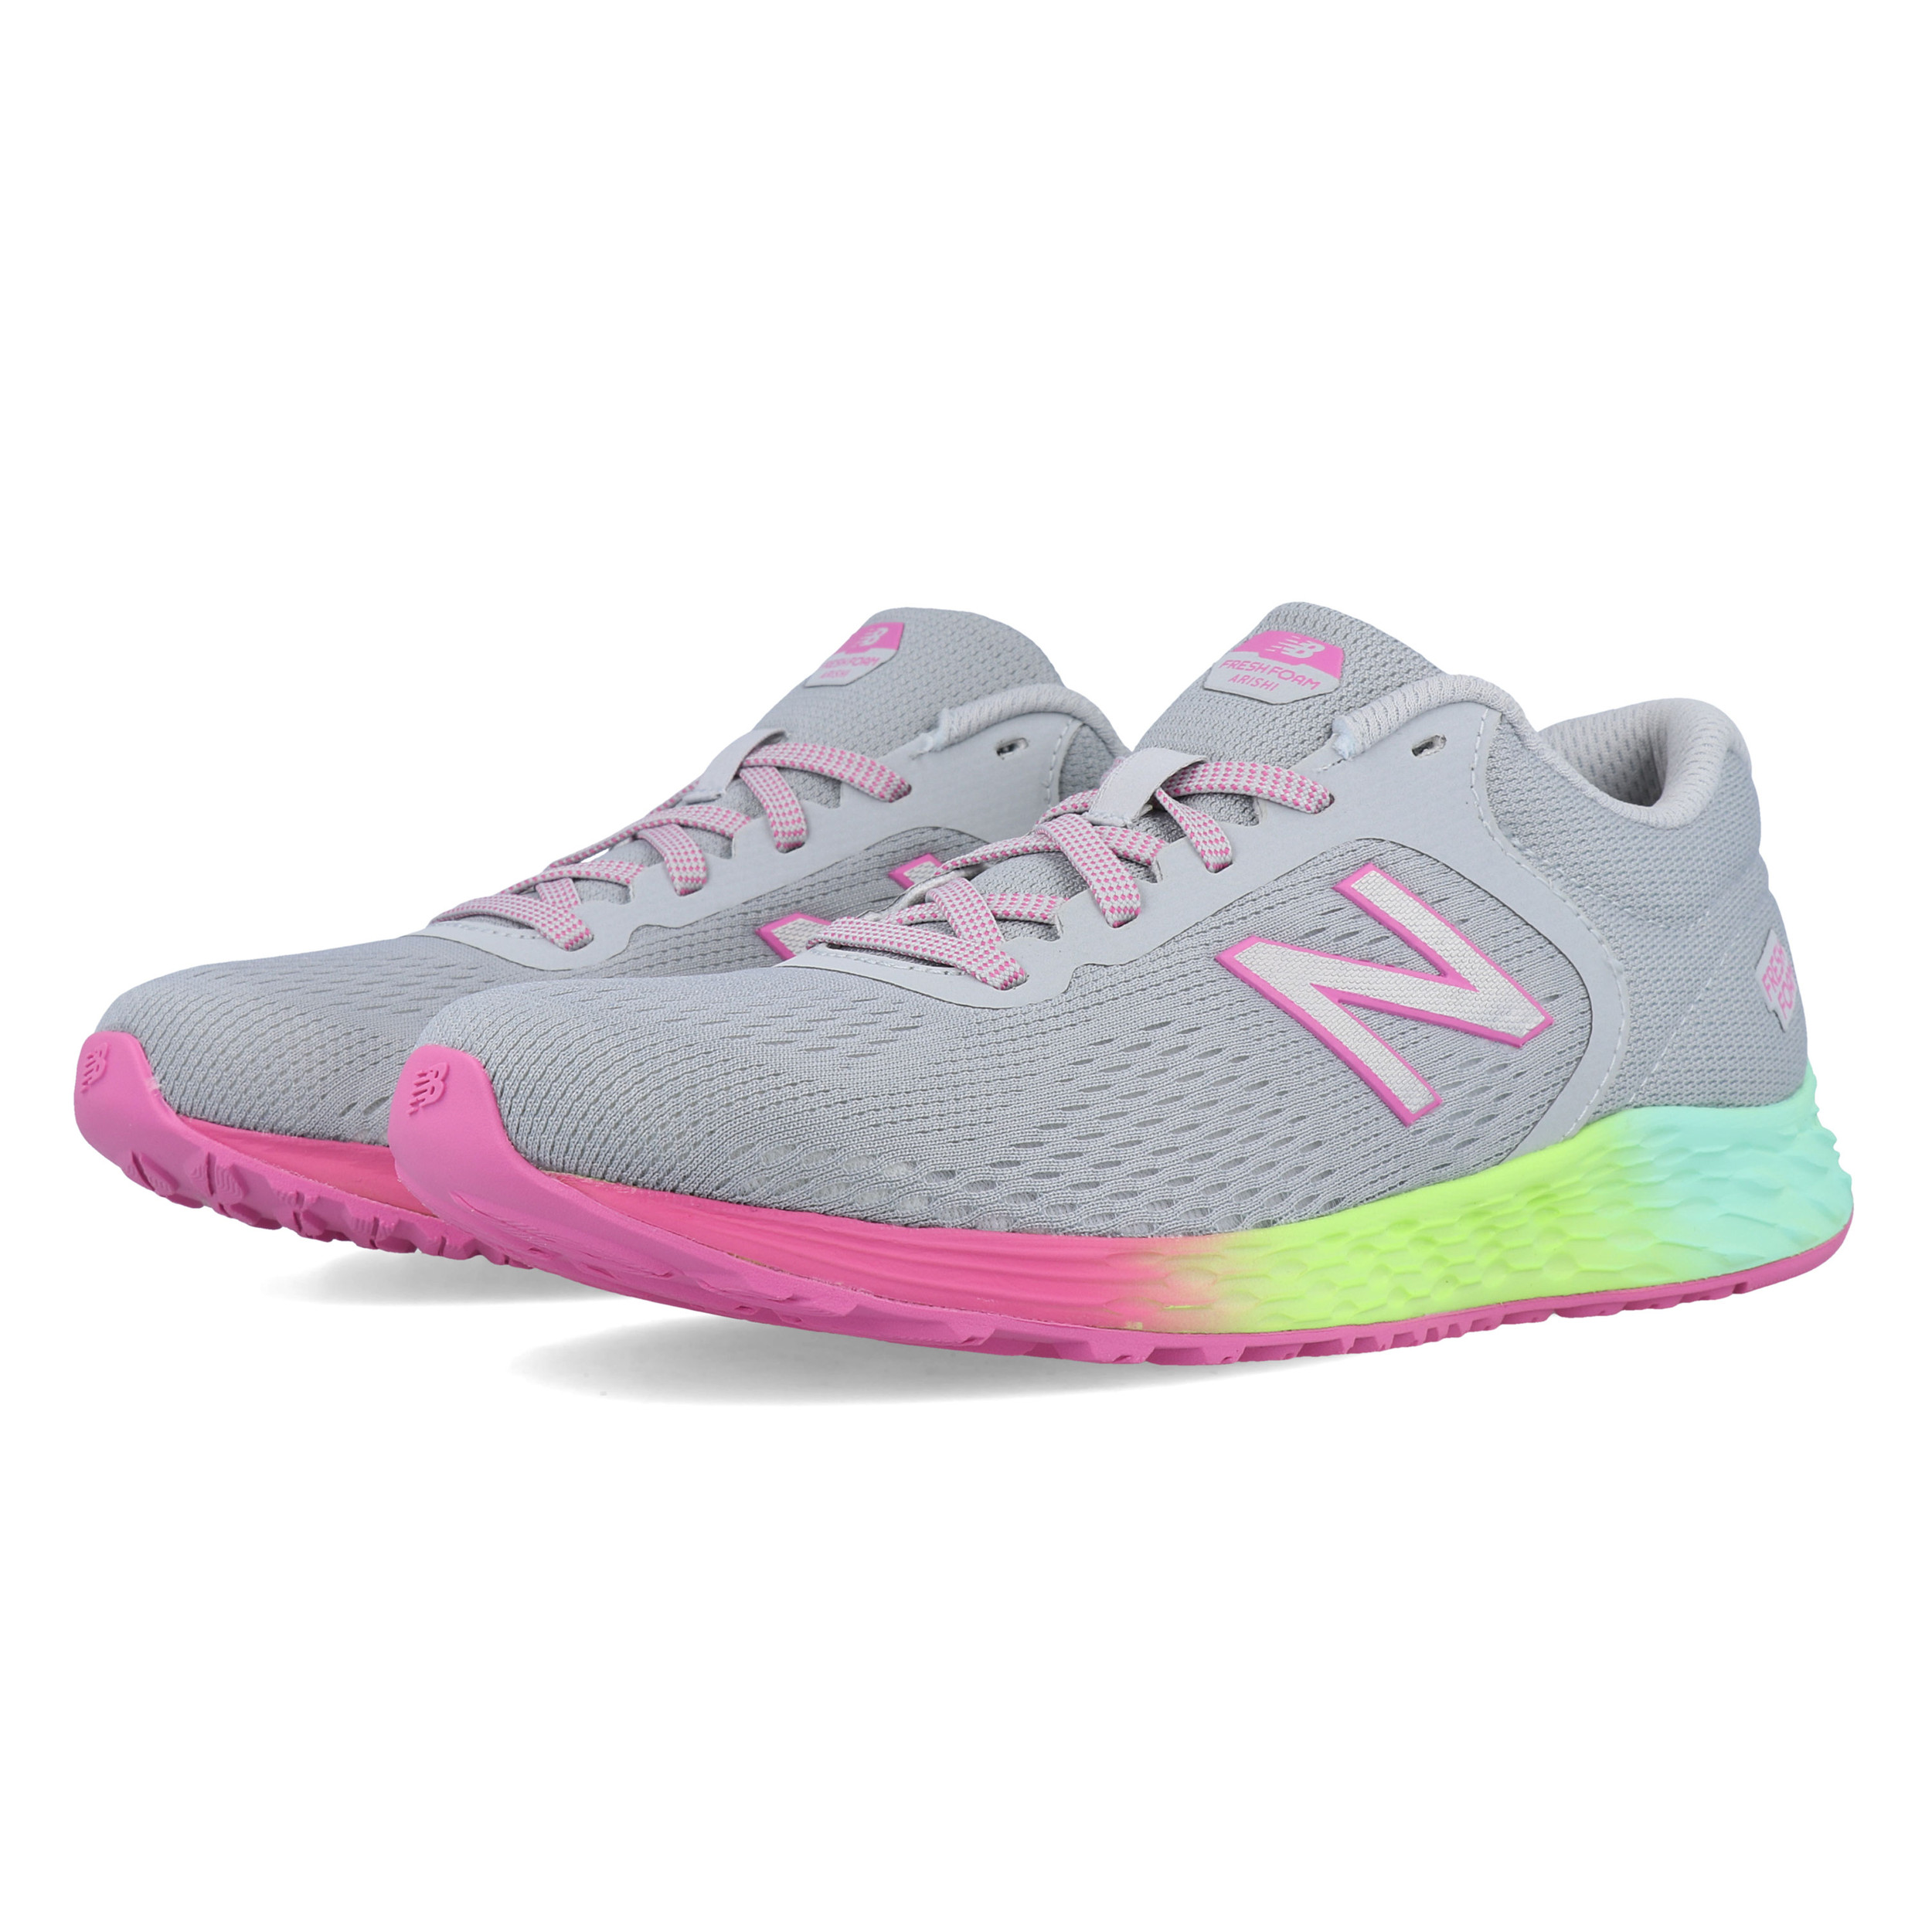 sports shoes ec813 f49f8 Details about New Balance Boys Arishi v2 Running Shoes Trainers Sneakers -  Grey Sports